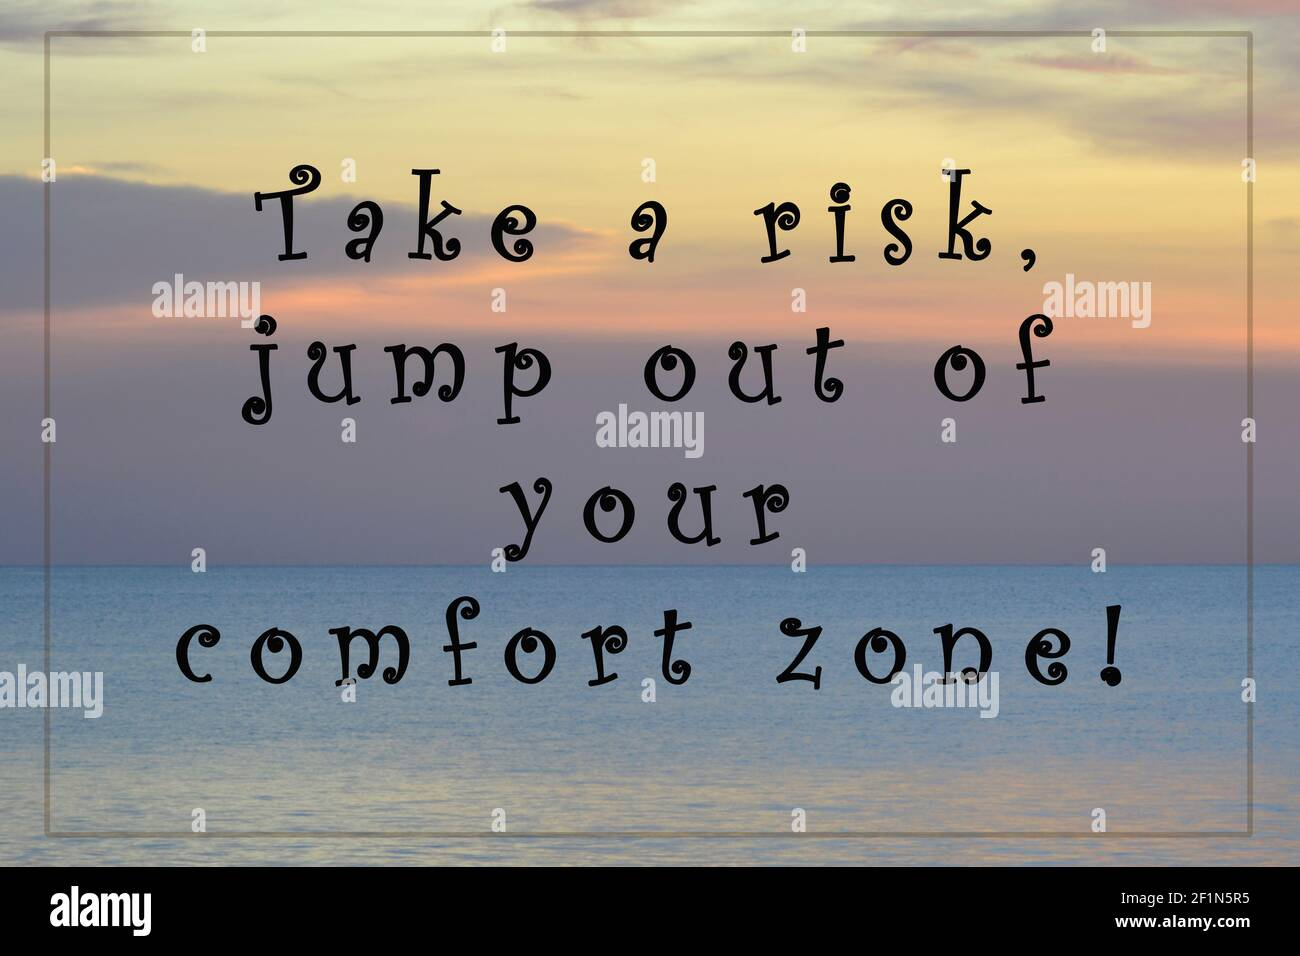 Blurred Image of sunset with motivational and inspirational quotes - Take a risk jump out of your comfort zone Stock Photo